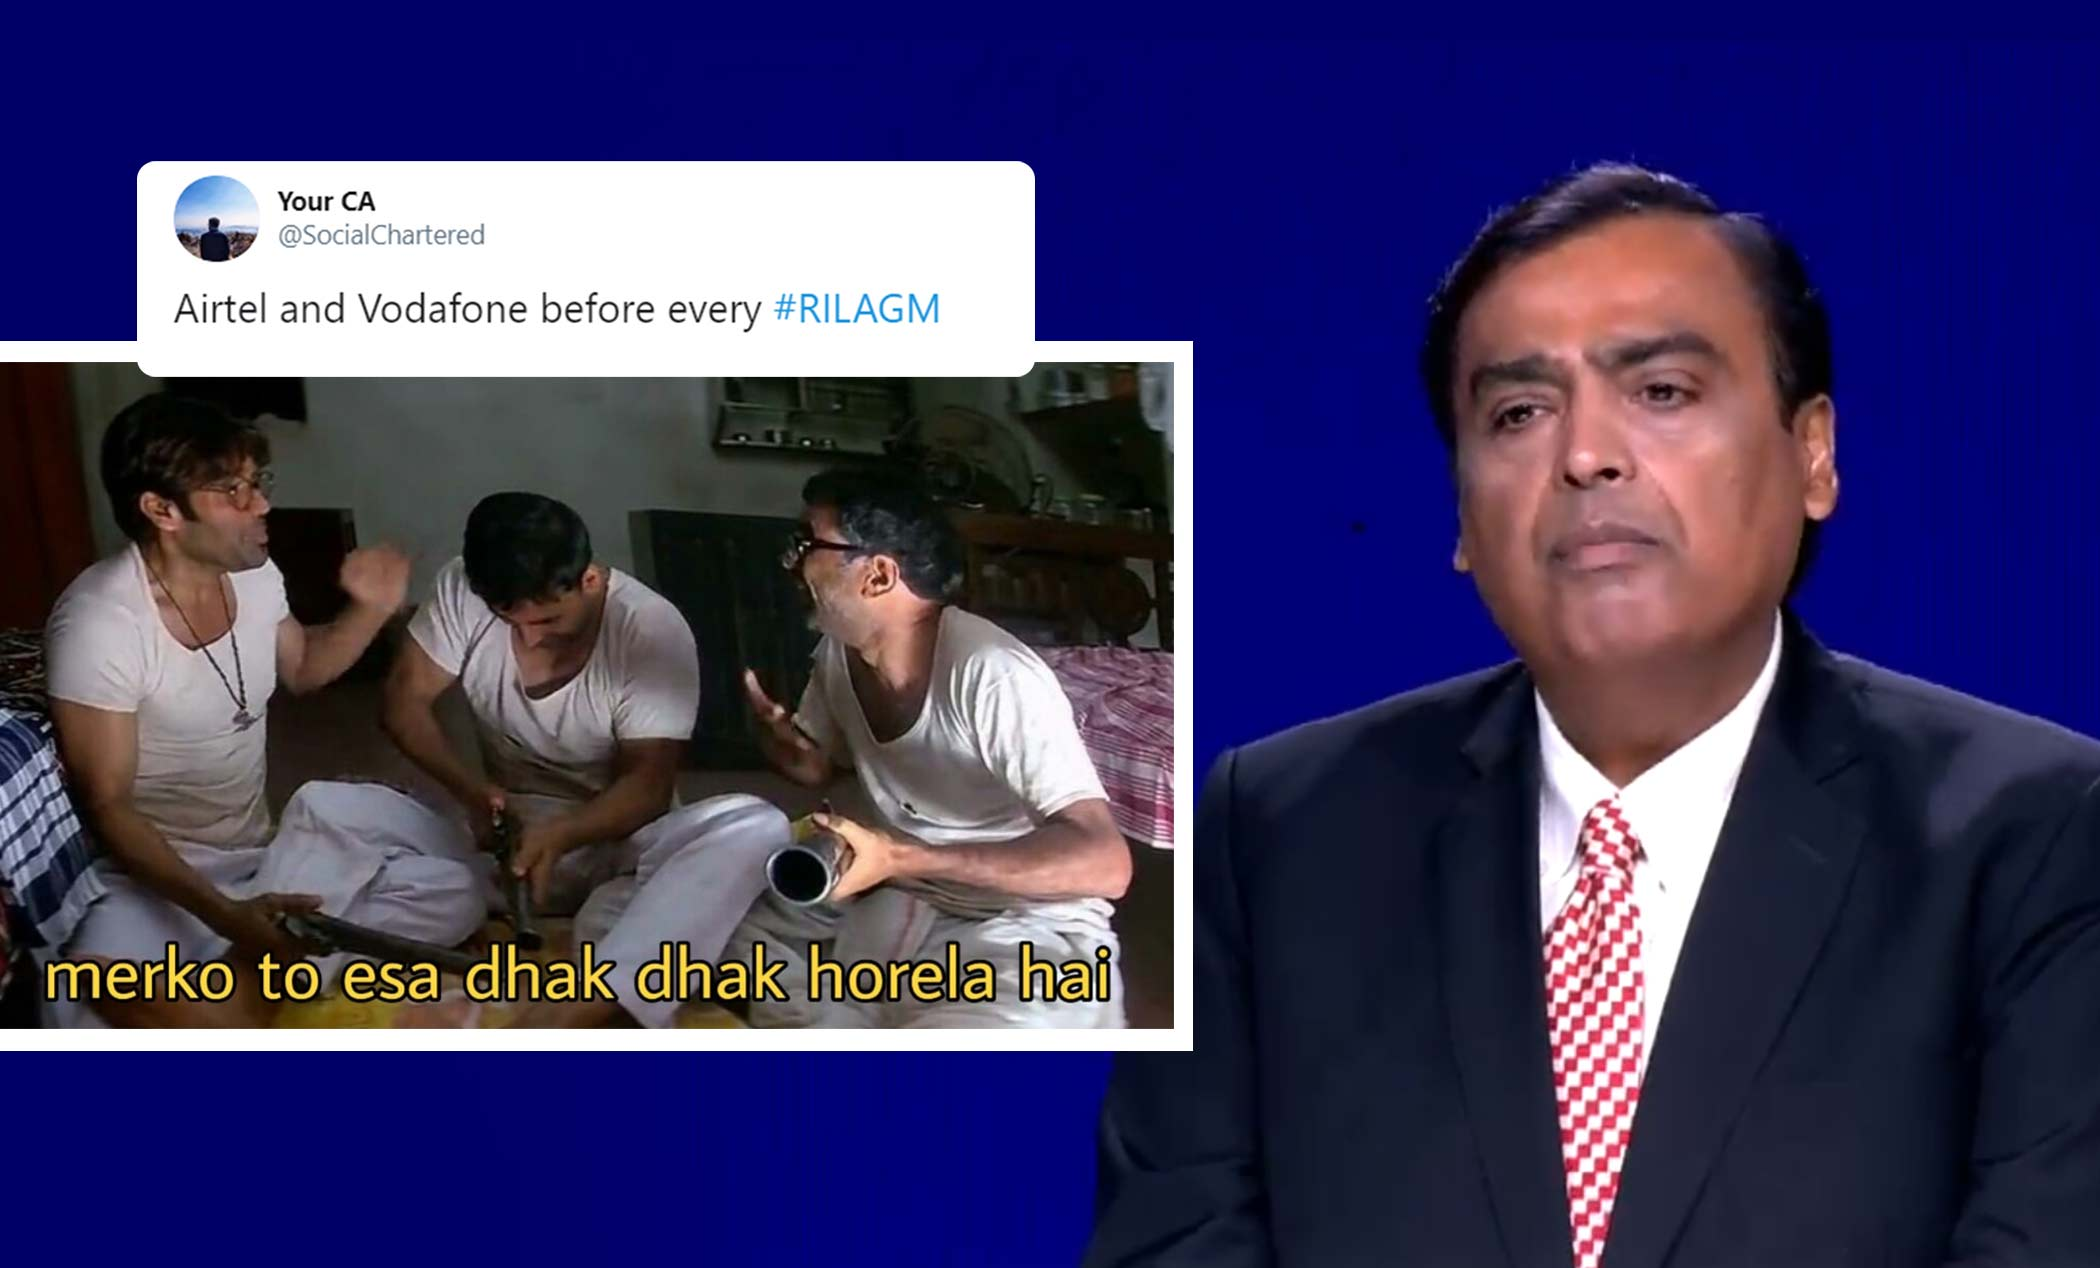 Reliance Jio Agm 2019 Has Spurned Memes About The Fate Of Other